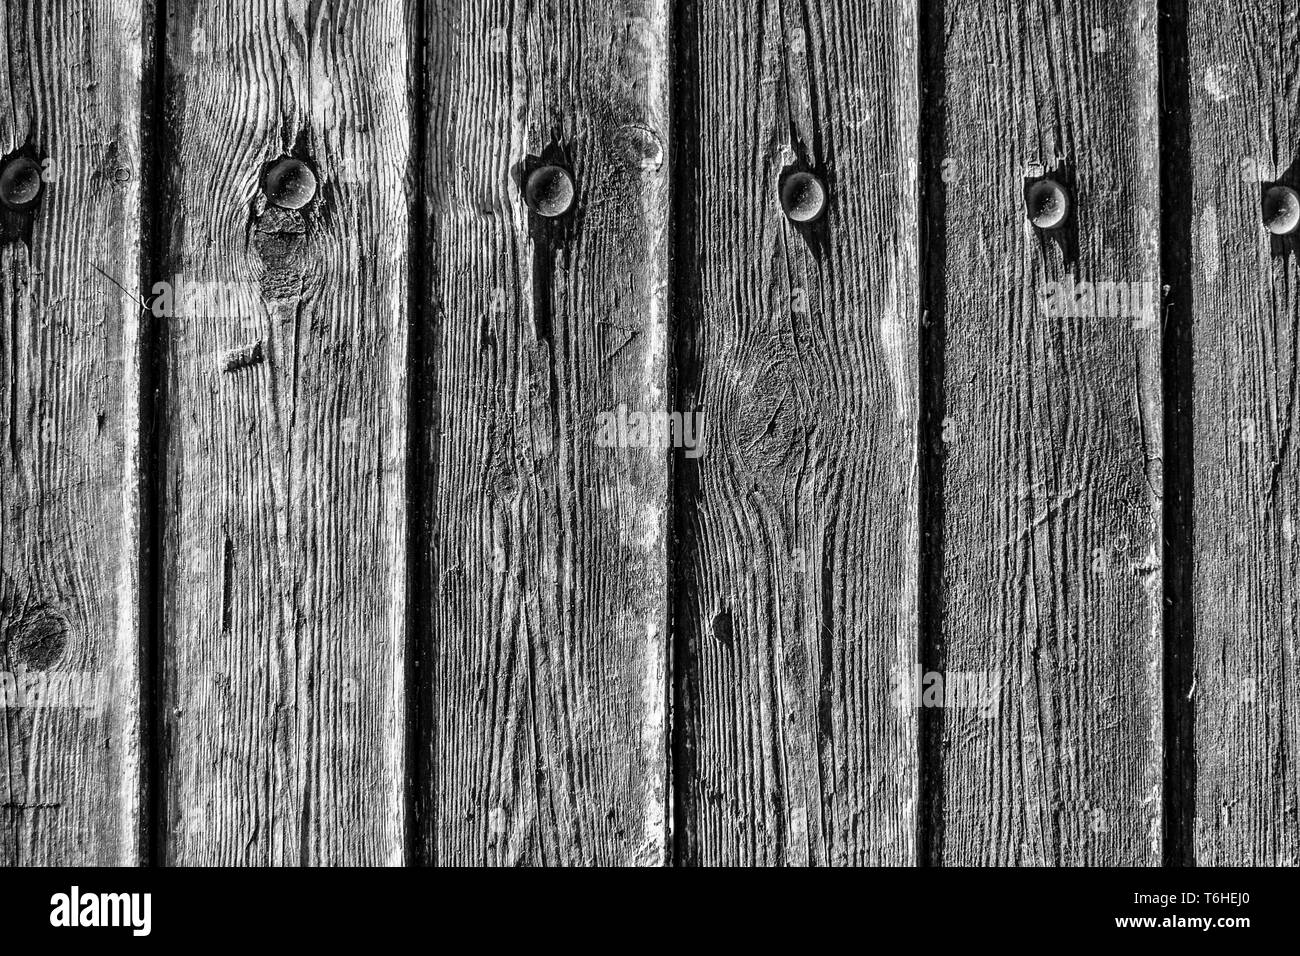 Weathered wood planks with metal nails textured background, black and white contrast - Stock Image